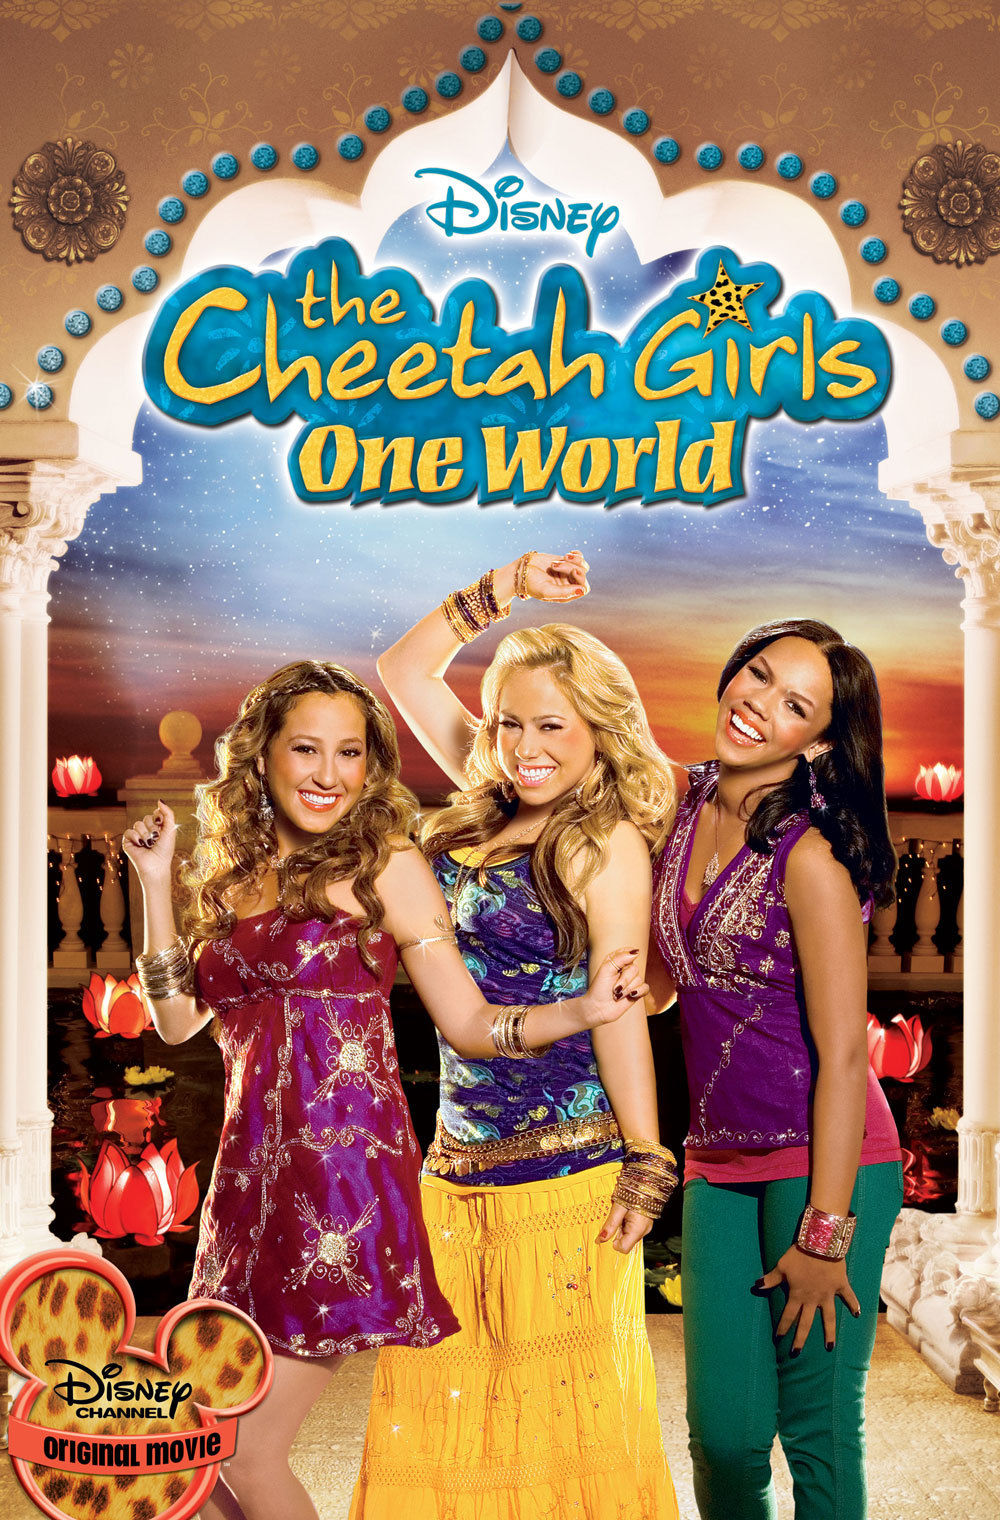 The Cheetah Girls: One World (TV Movie 2008) - IMDb